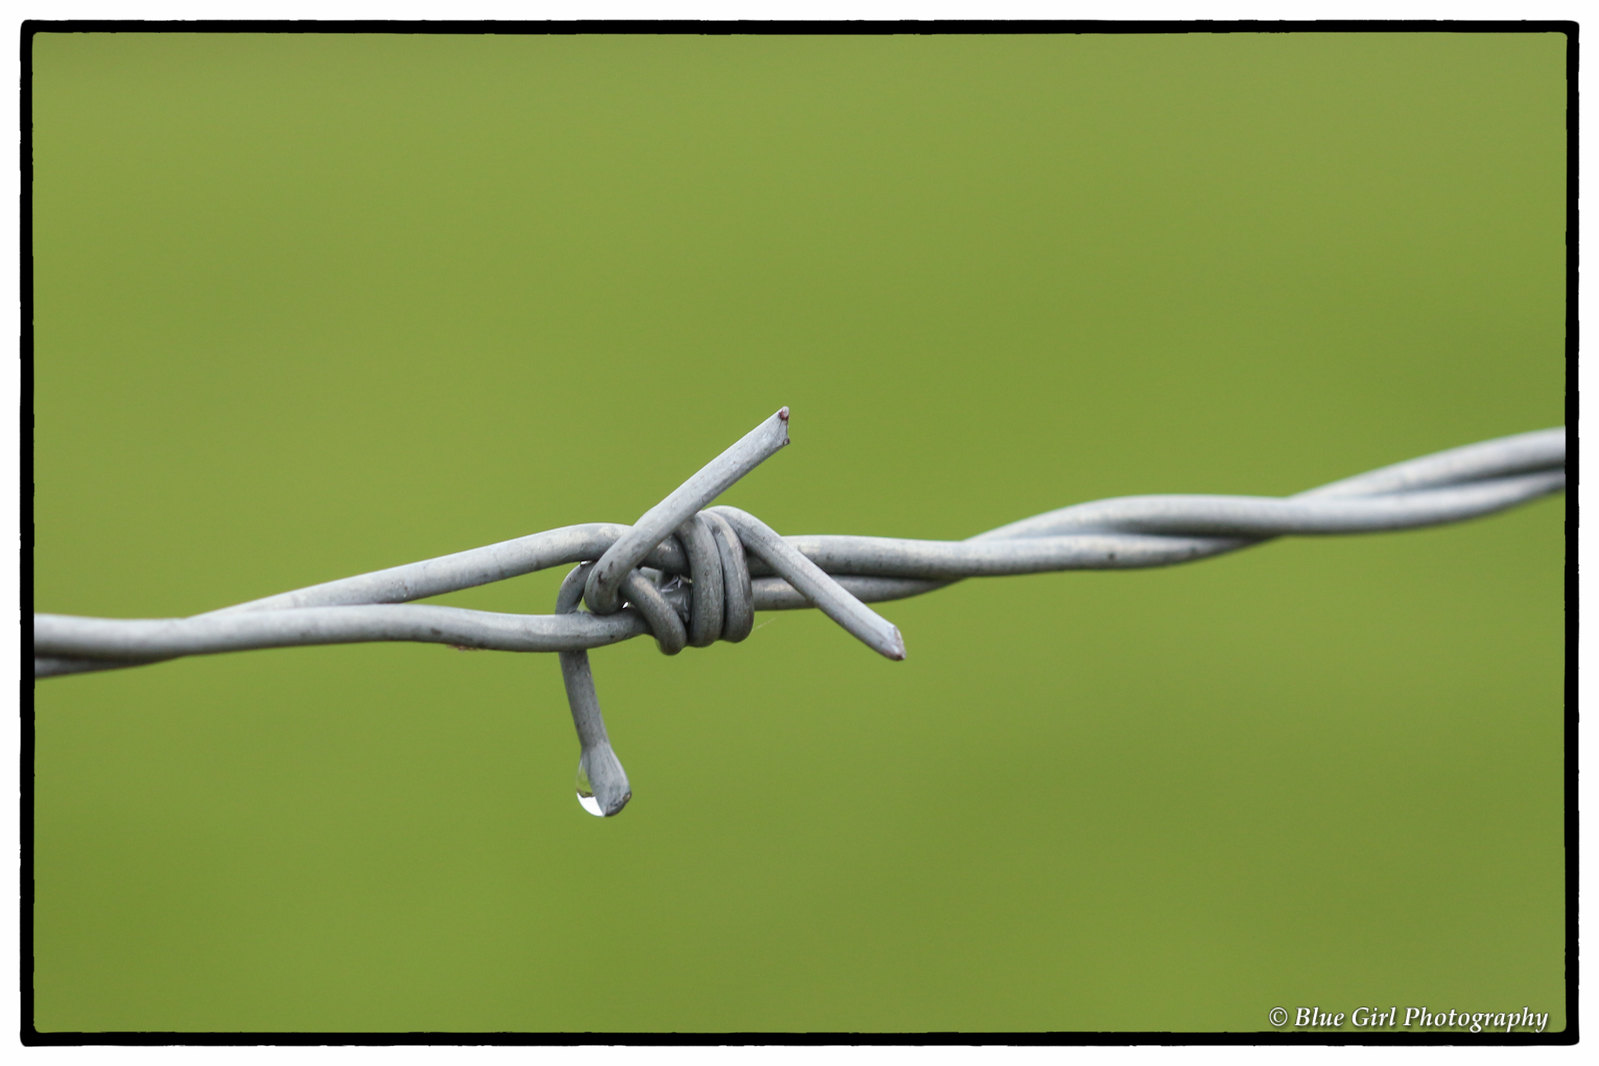 Barbed wire droplet